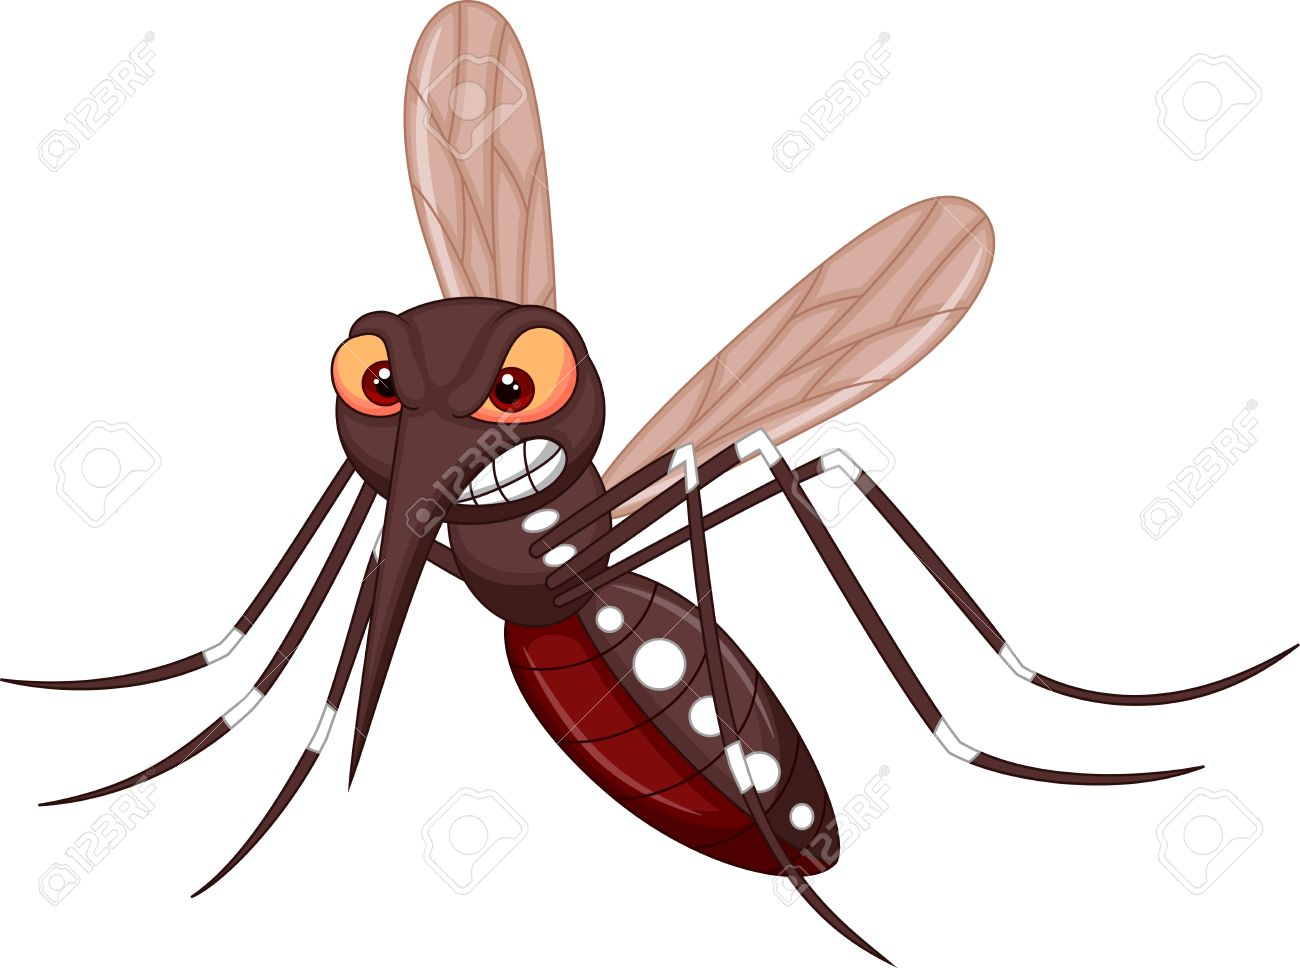 Angry mosquito cartoon Stock Vector - 23517117